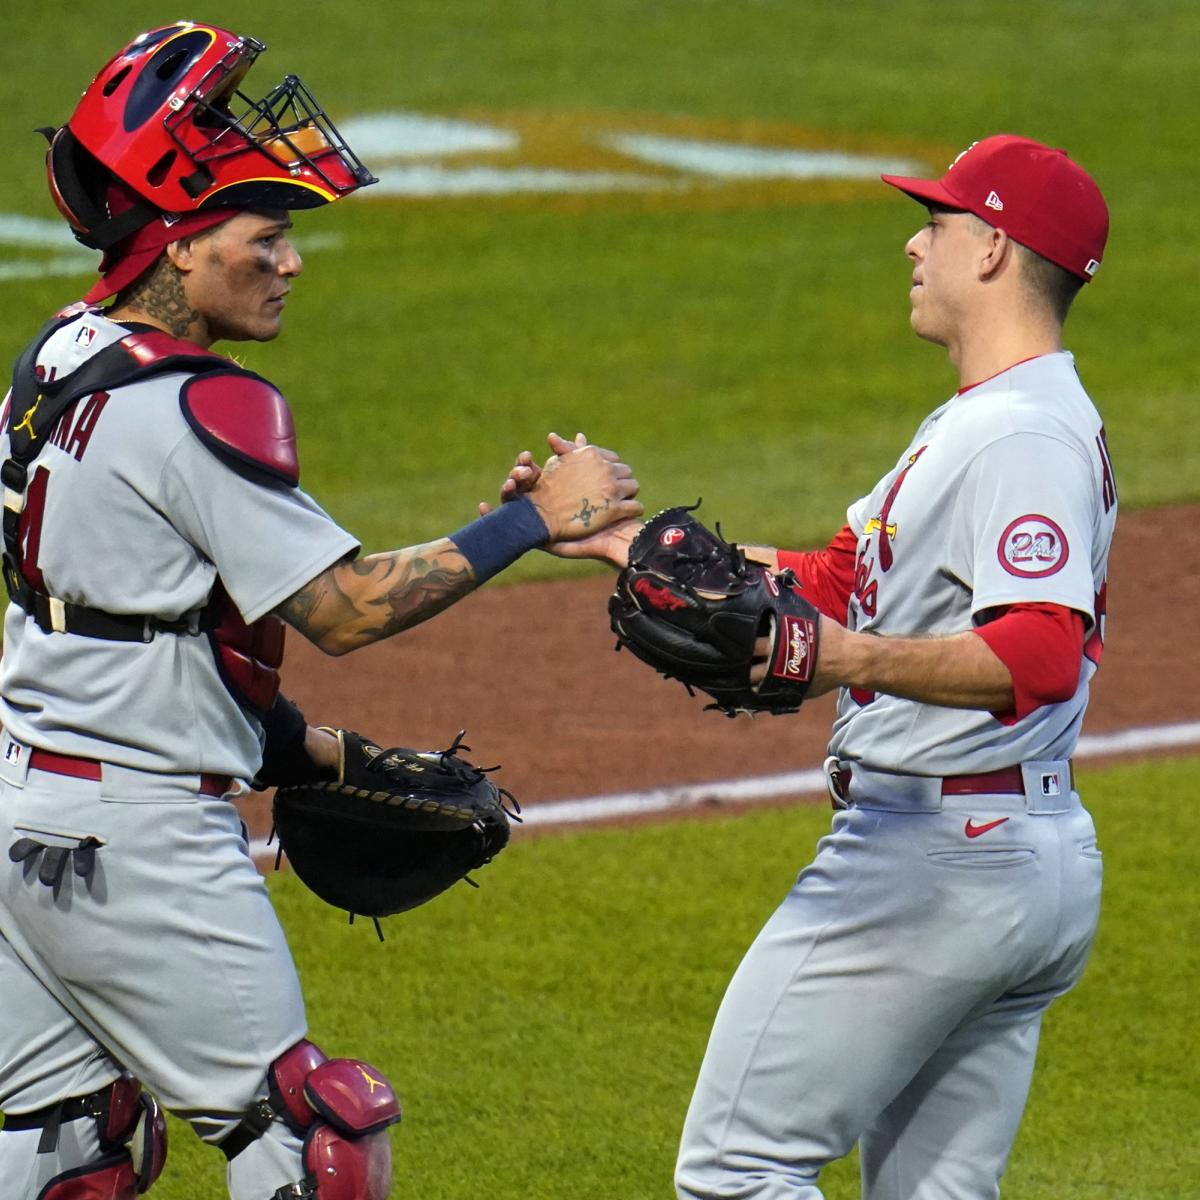 Cardinals Clinch 2020 MLB Playoff Berth with Win vs. Brewers